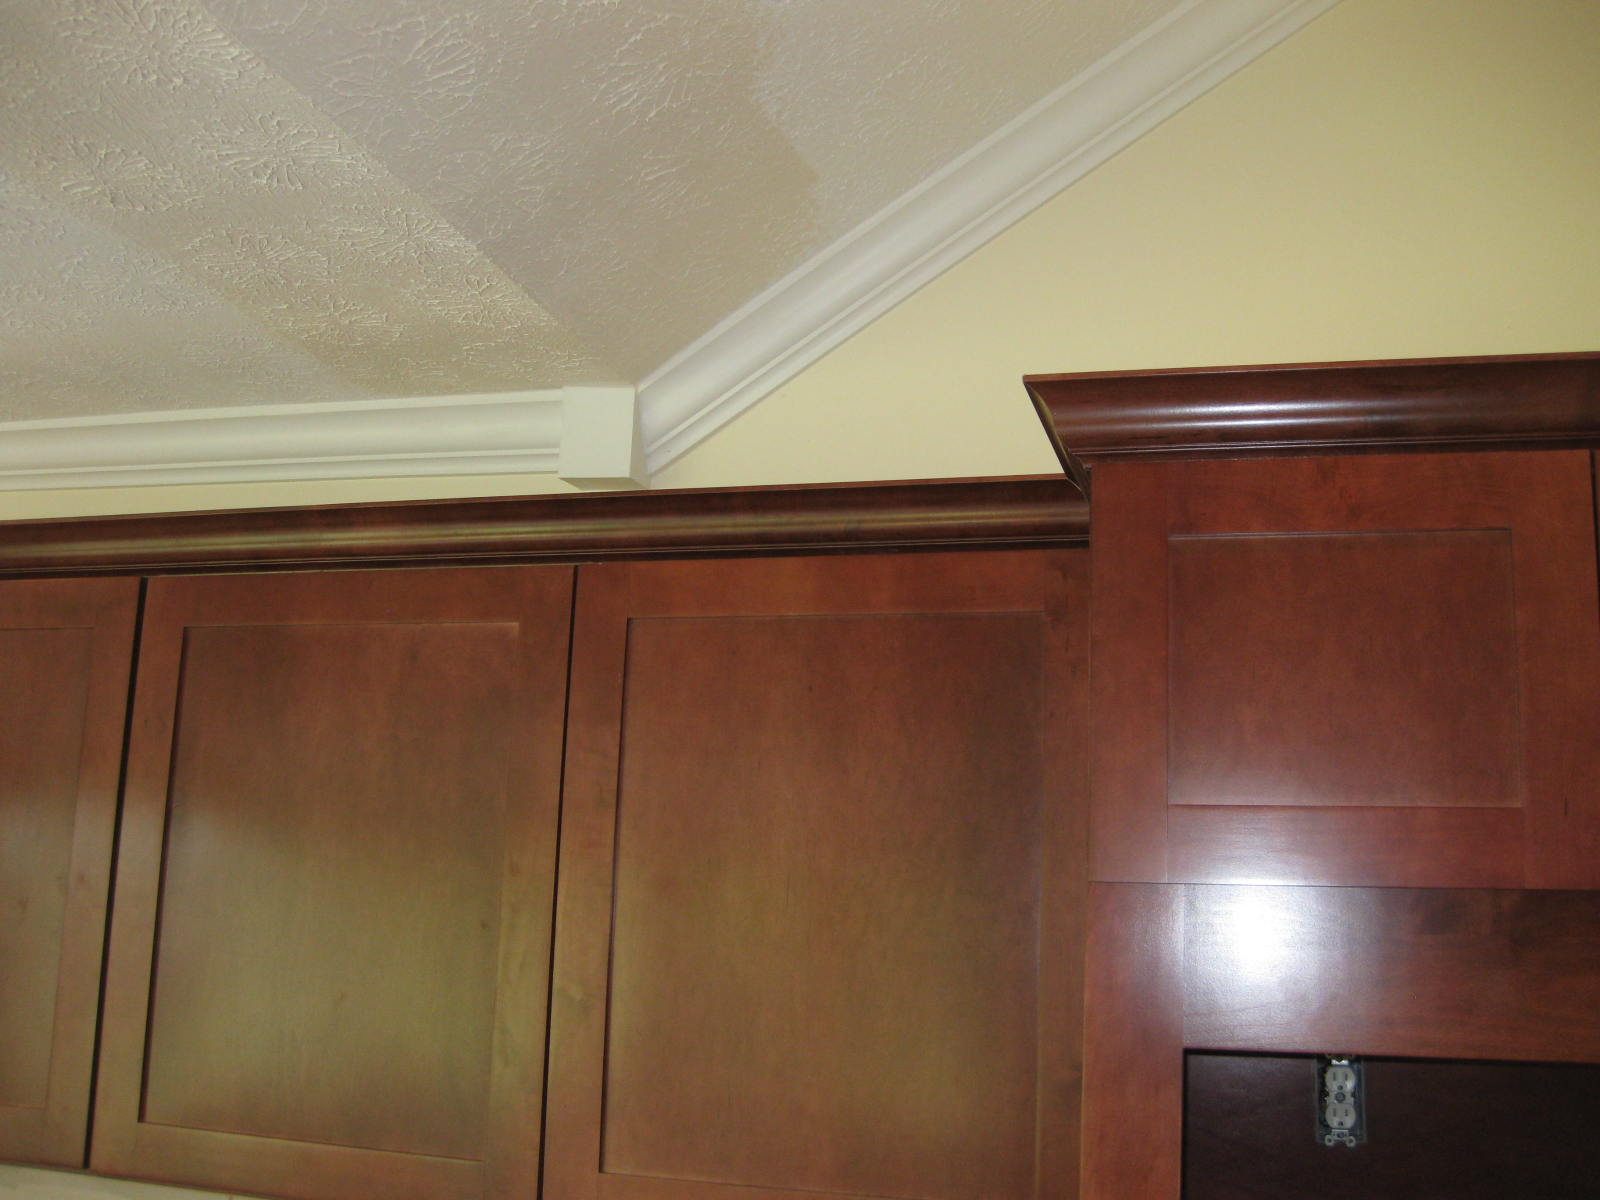 crown molding kitchen cabinets pictures crown molding above kitchen cabinets images frompo 1 14252